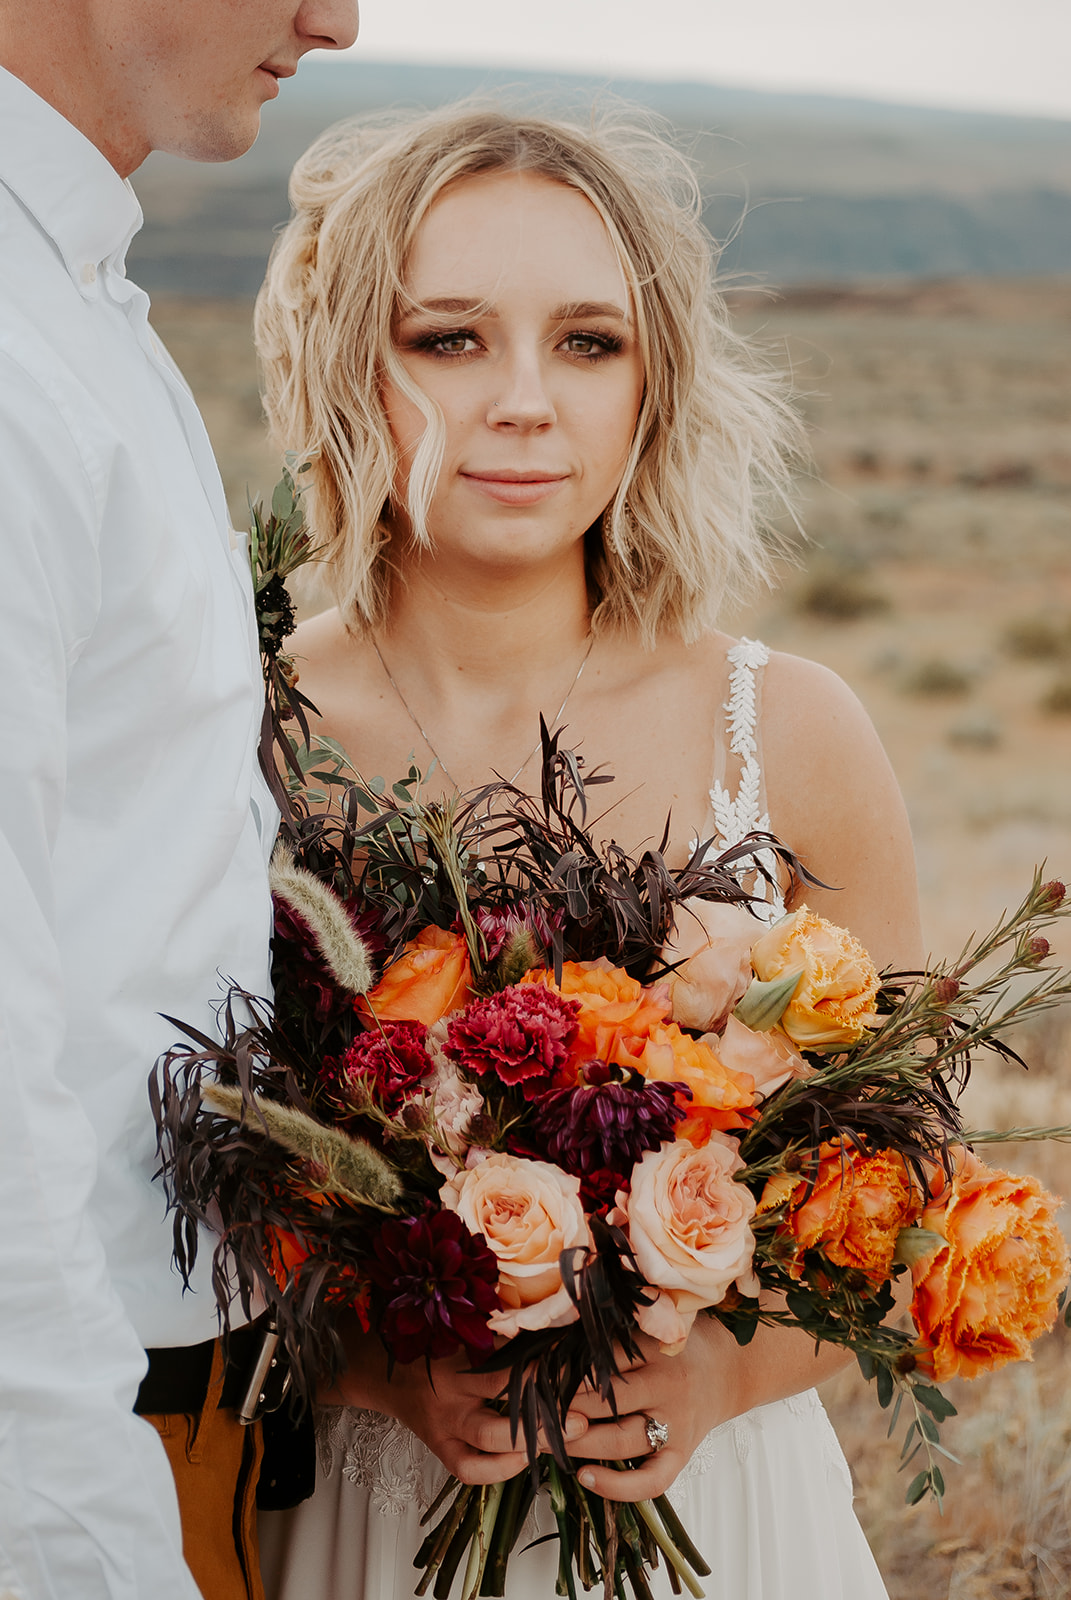 desert elopement wedding spokane washington bridal dress